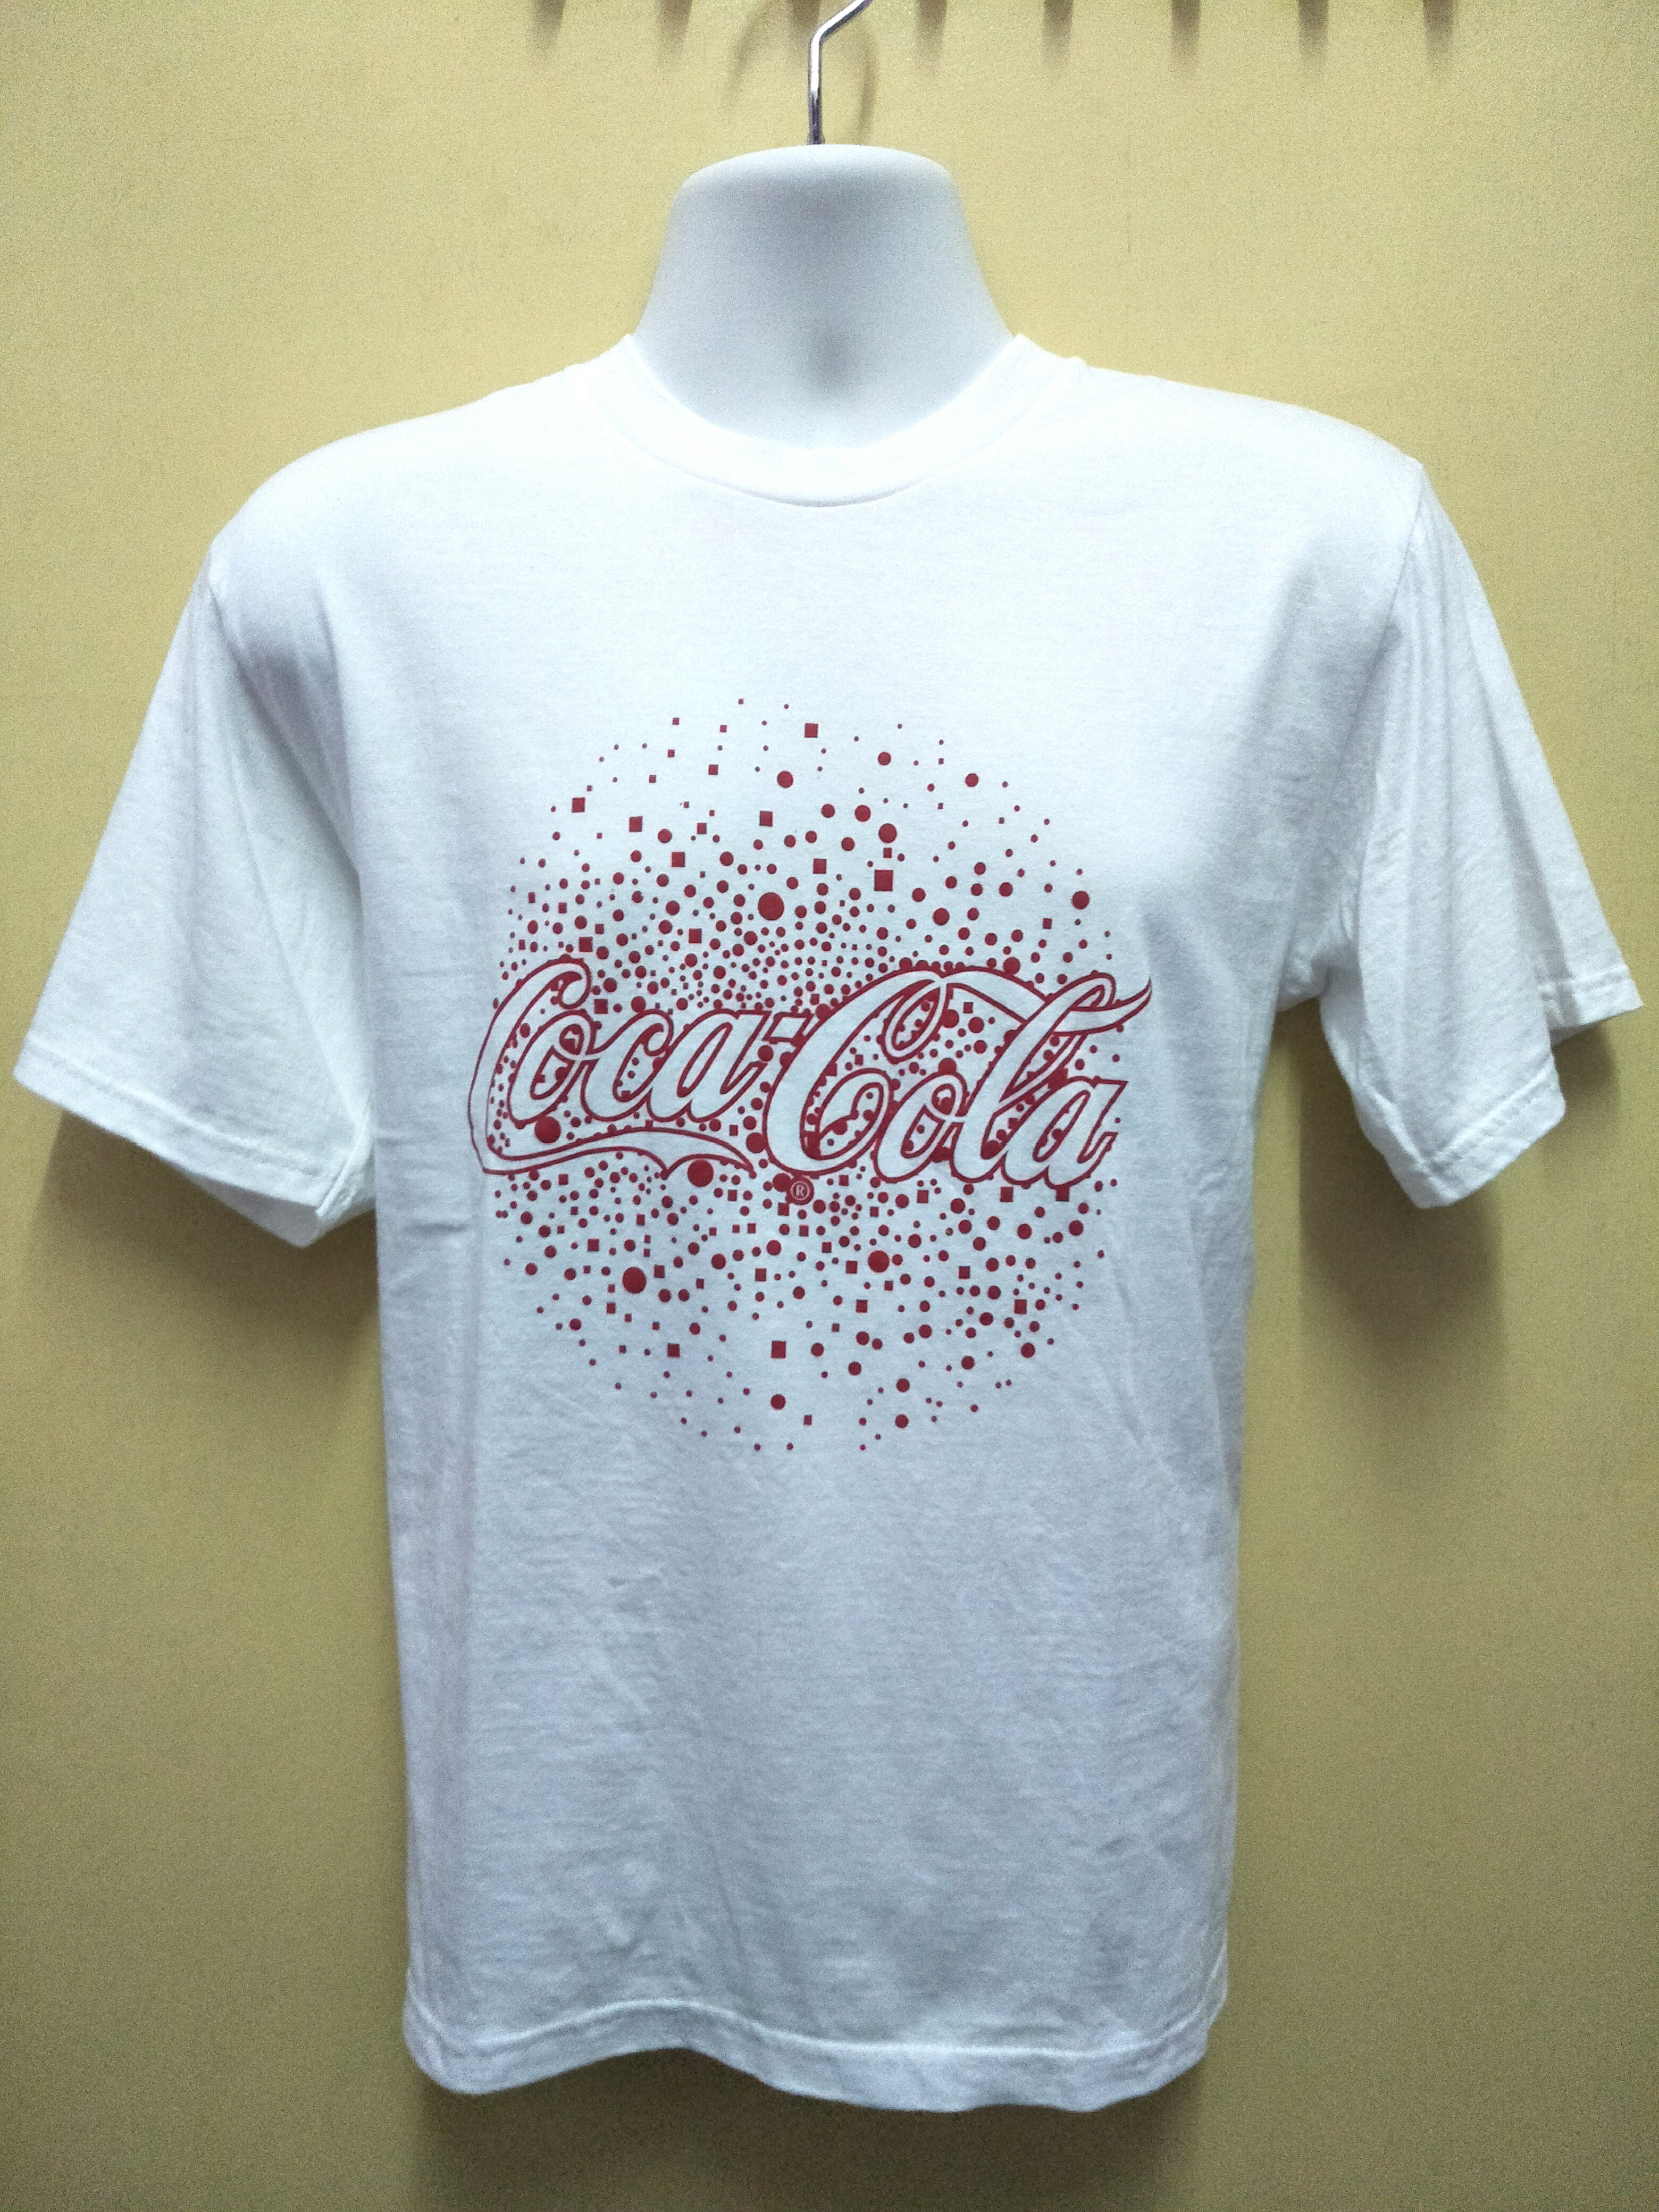 7805327c2 Tshirt Coca Cola Putih, Men's Fashion, Clothes, Tops on Carousell